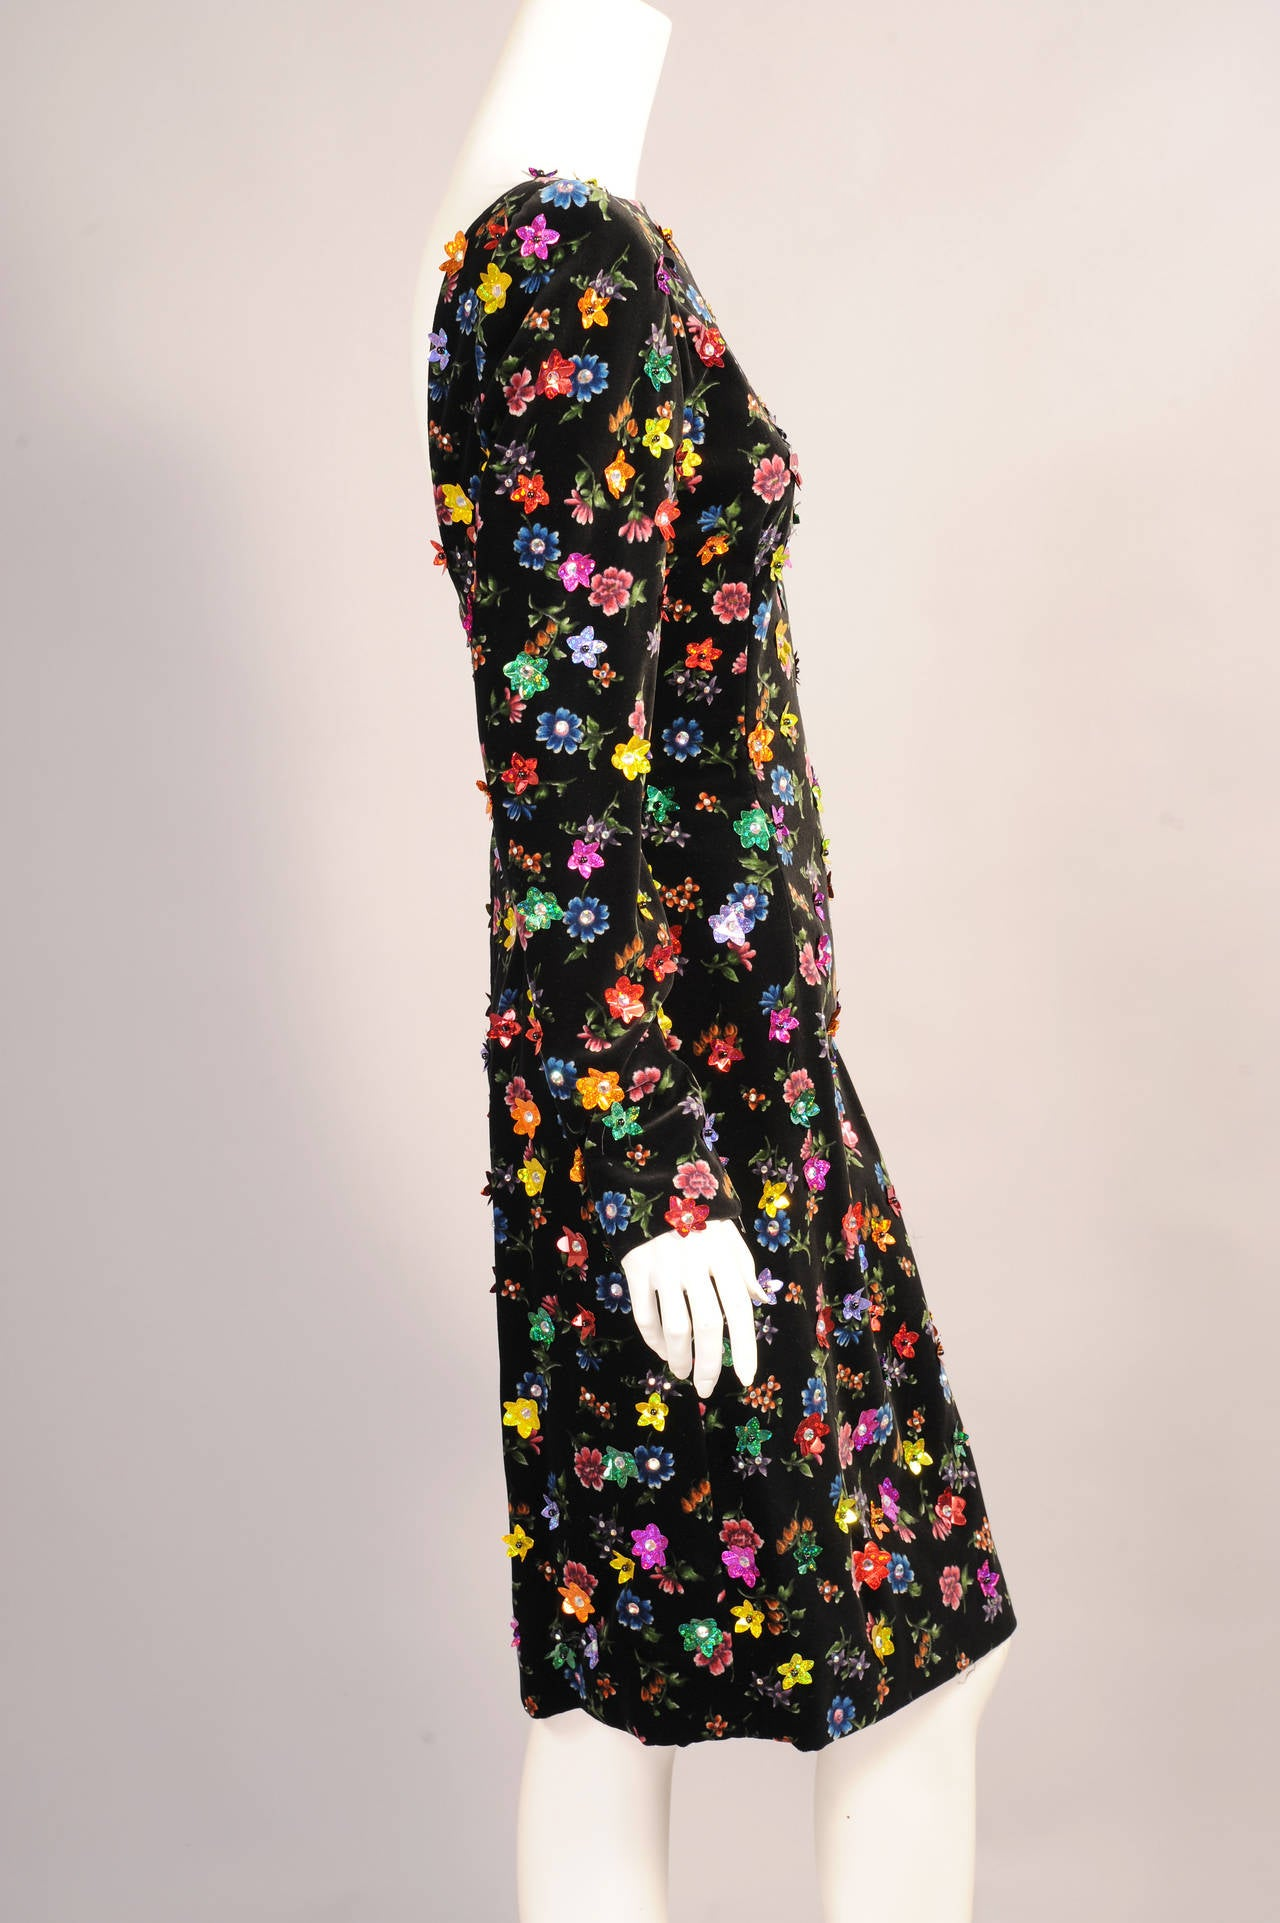 Givenchy Haute Couture Beaded & Printed Floral Velvet Dress, Low Back 3